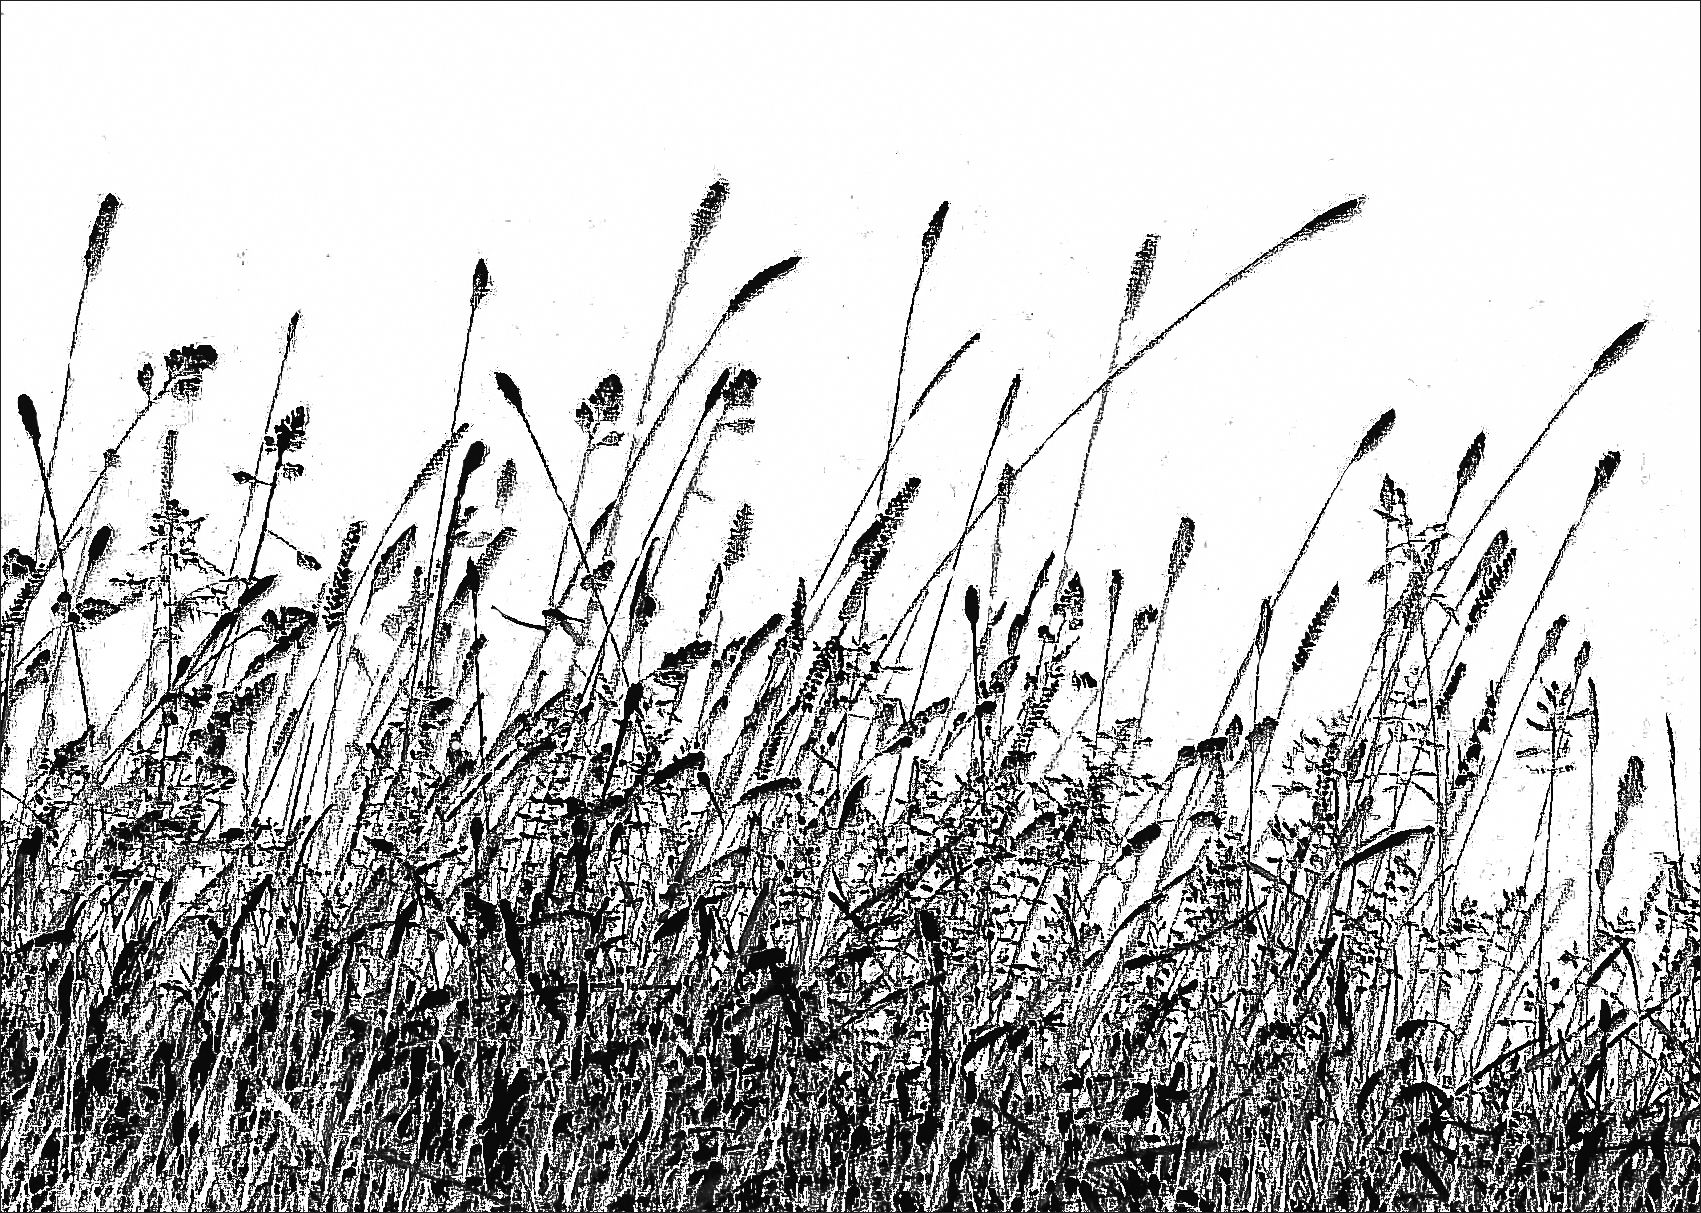 Tall Grass Silhouette Inside Image Result For Grasses Railings Insperation Pinterest